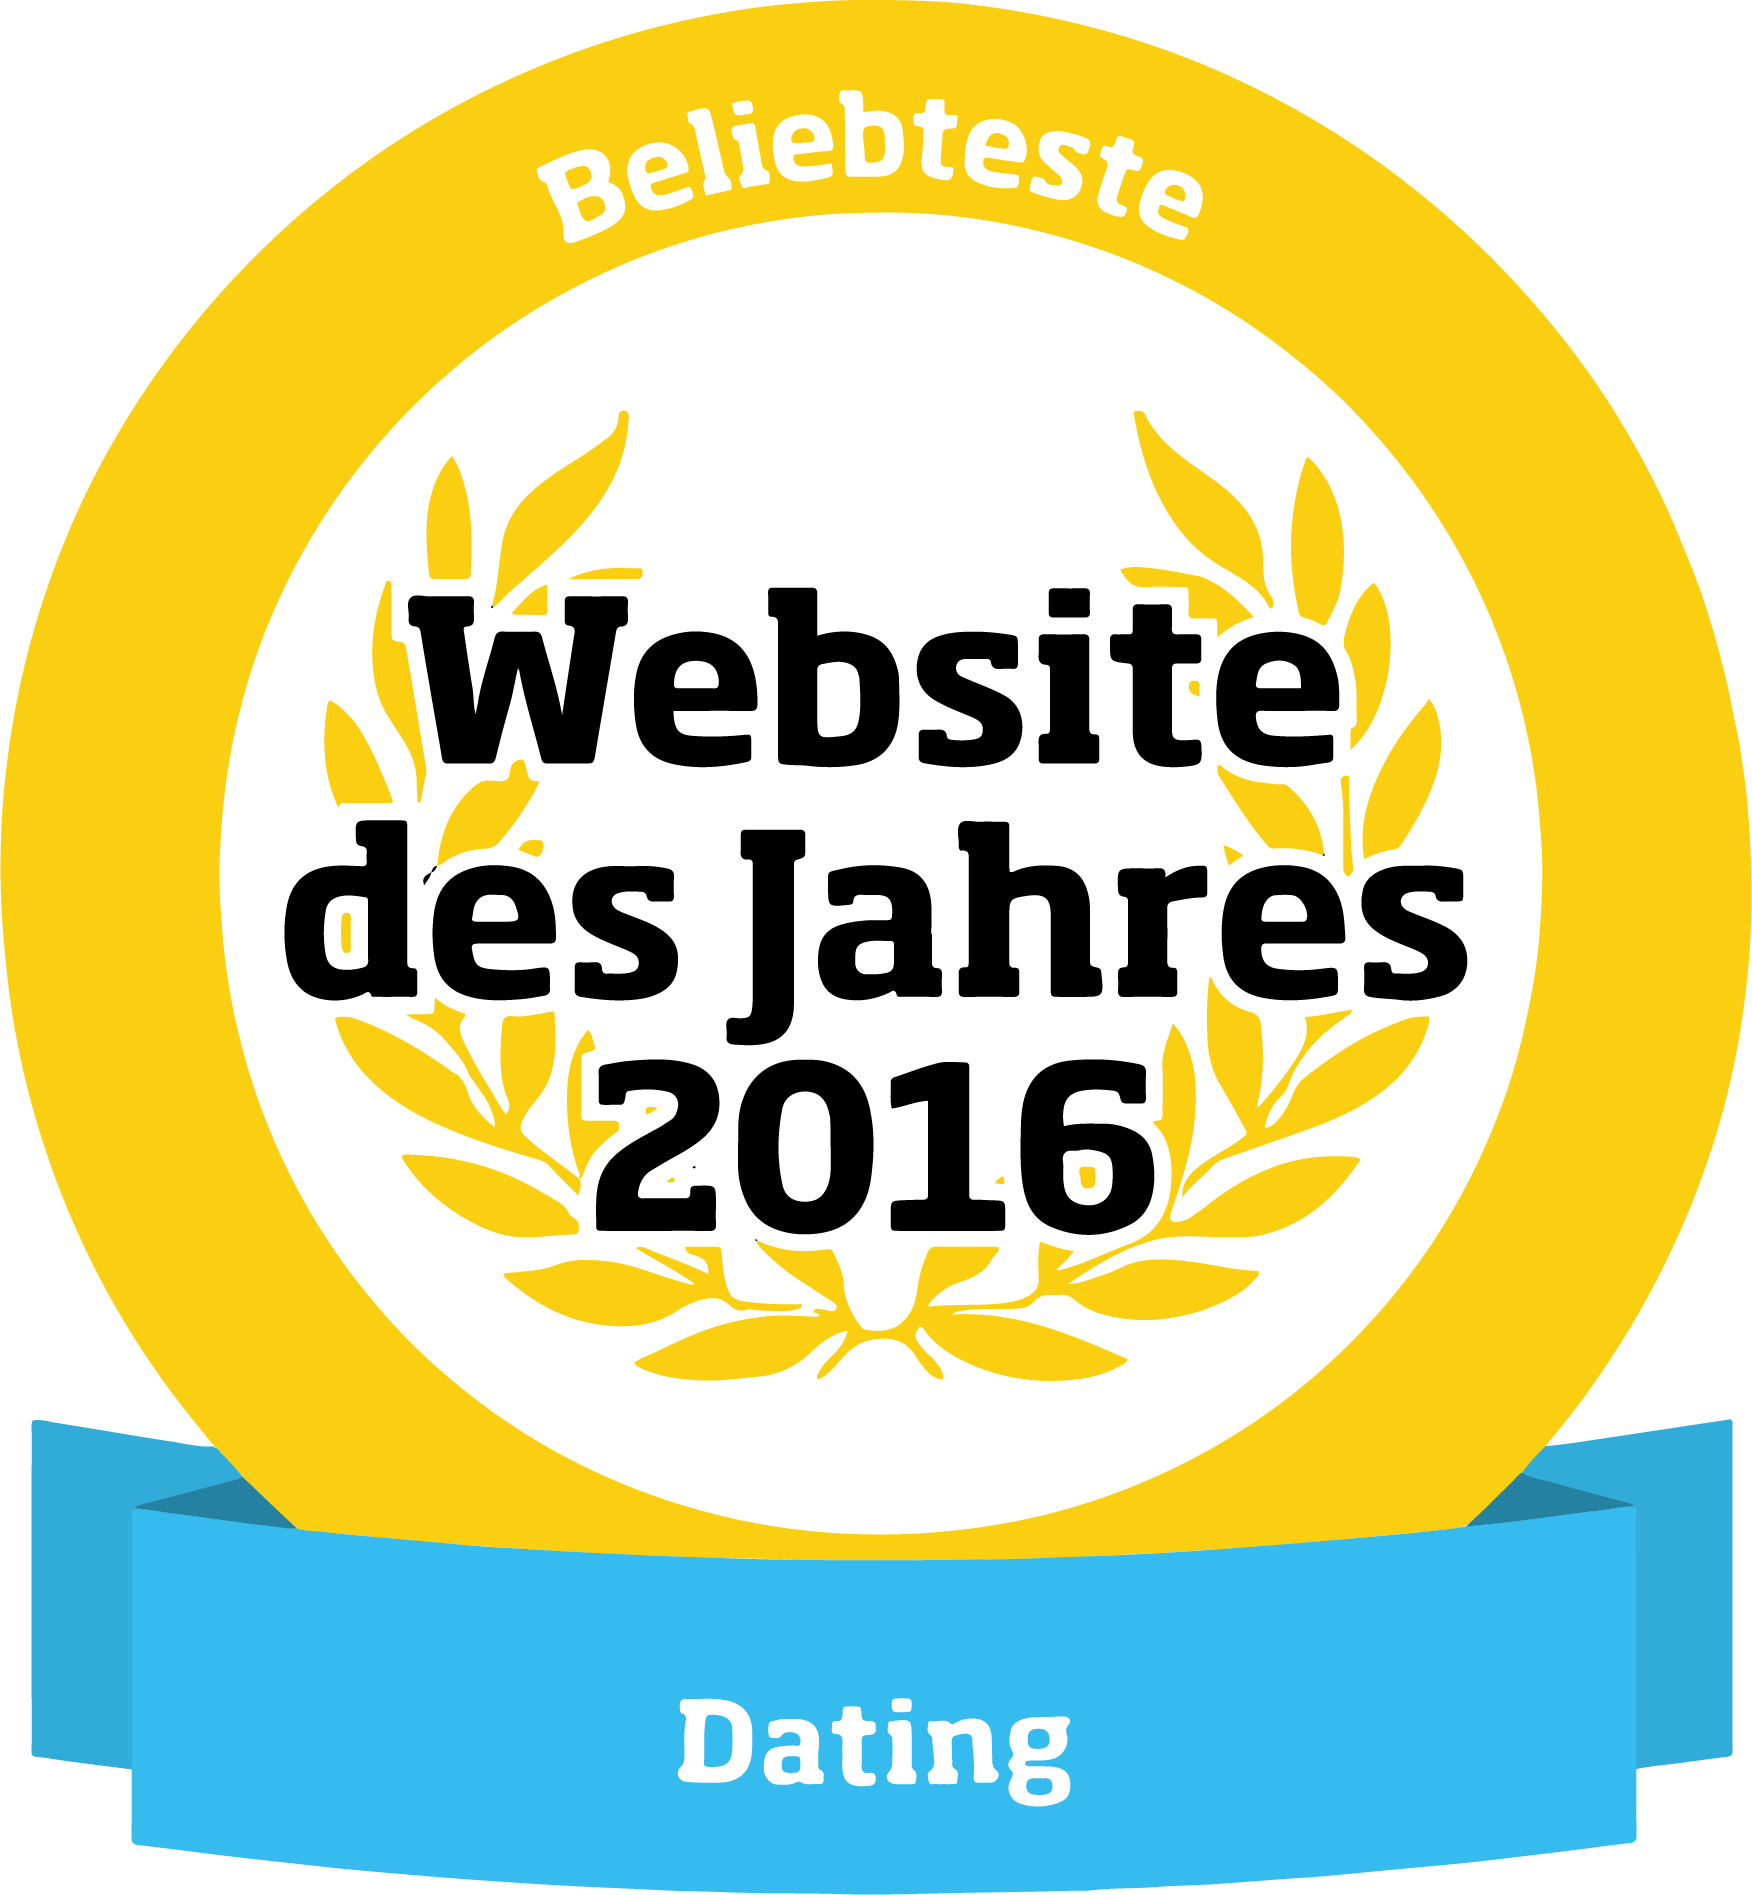 Bildkontakte.de: Dating Website des Jahres 2016